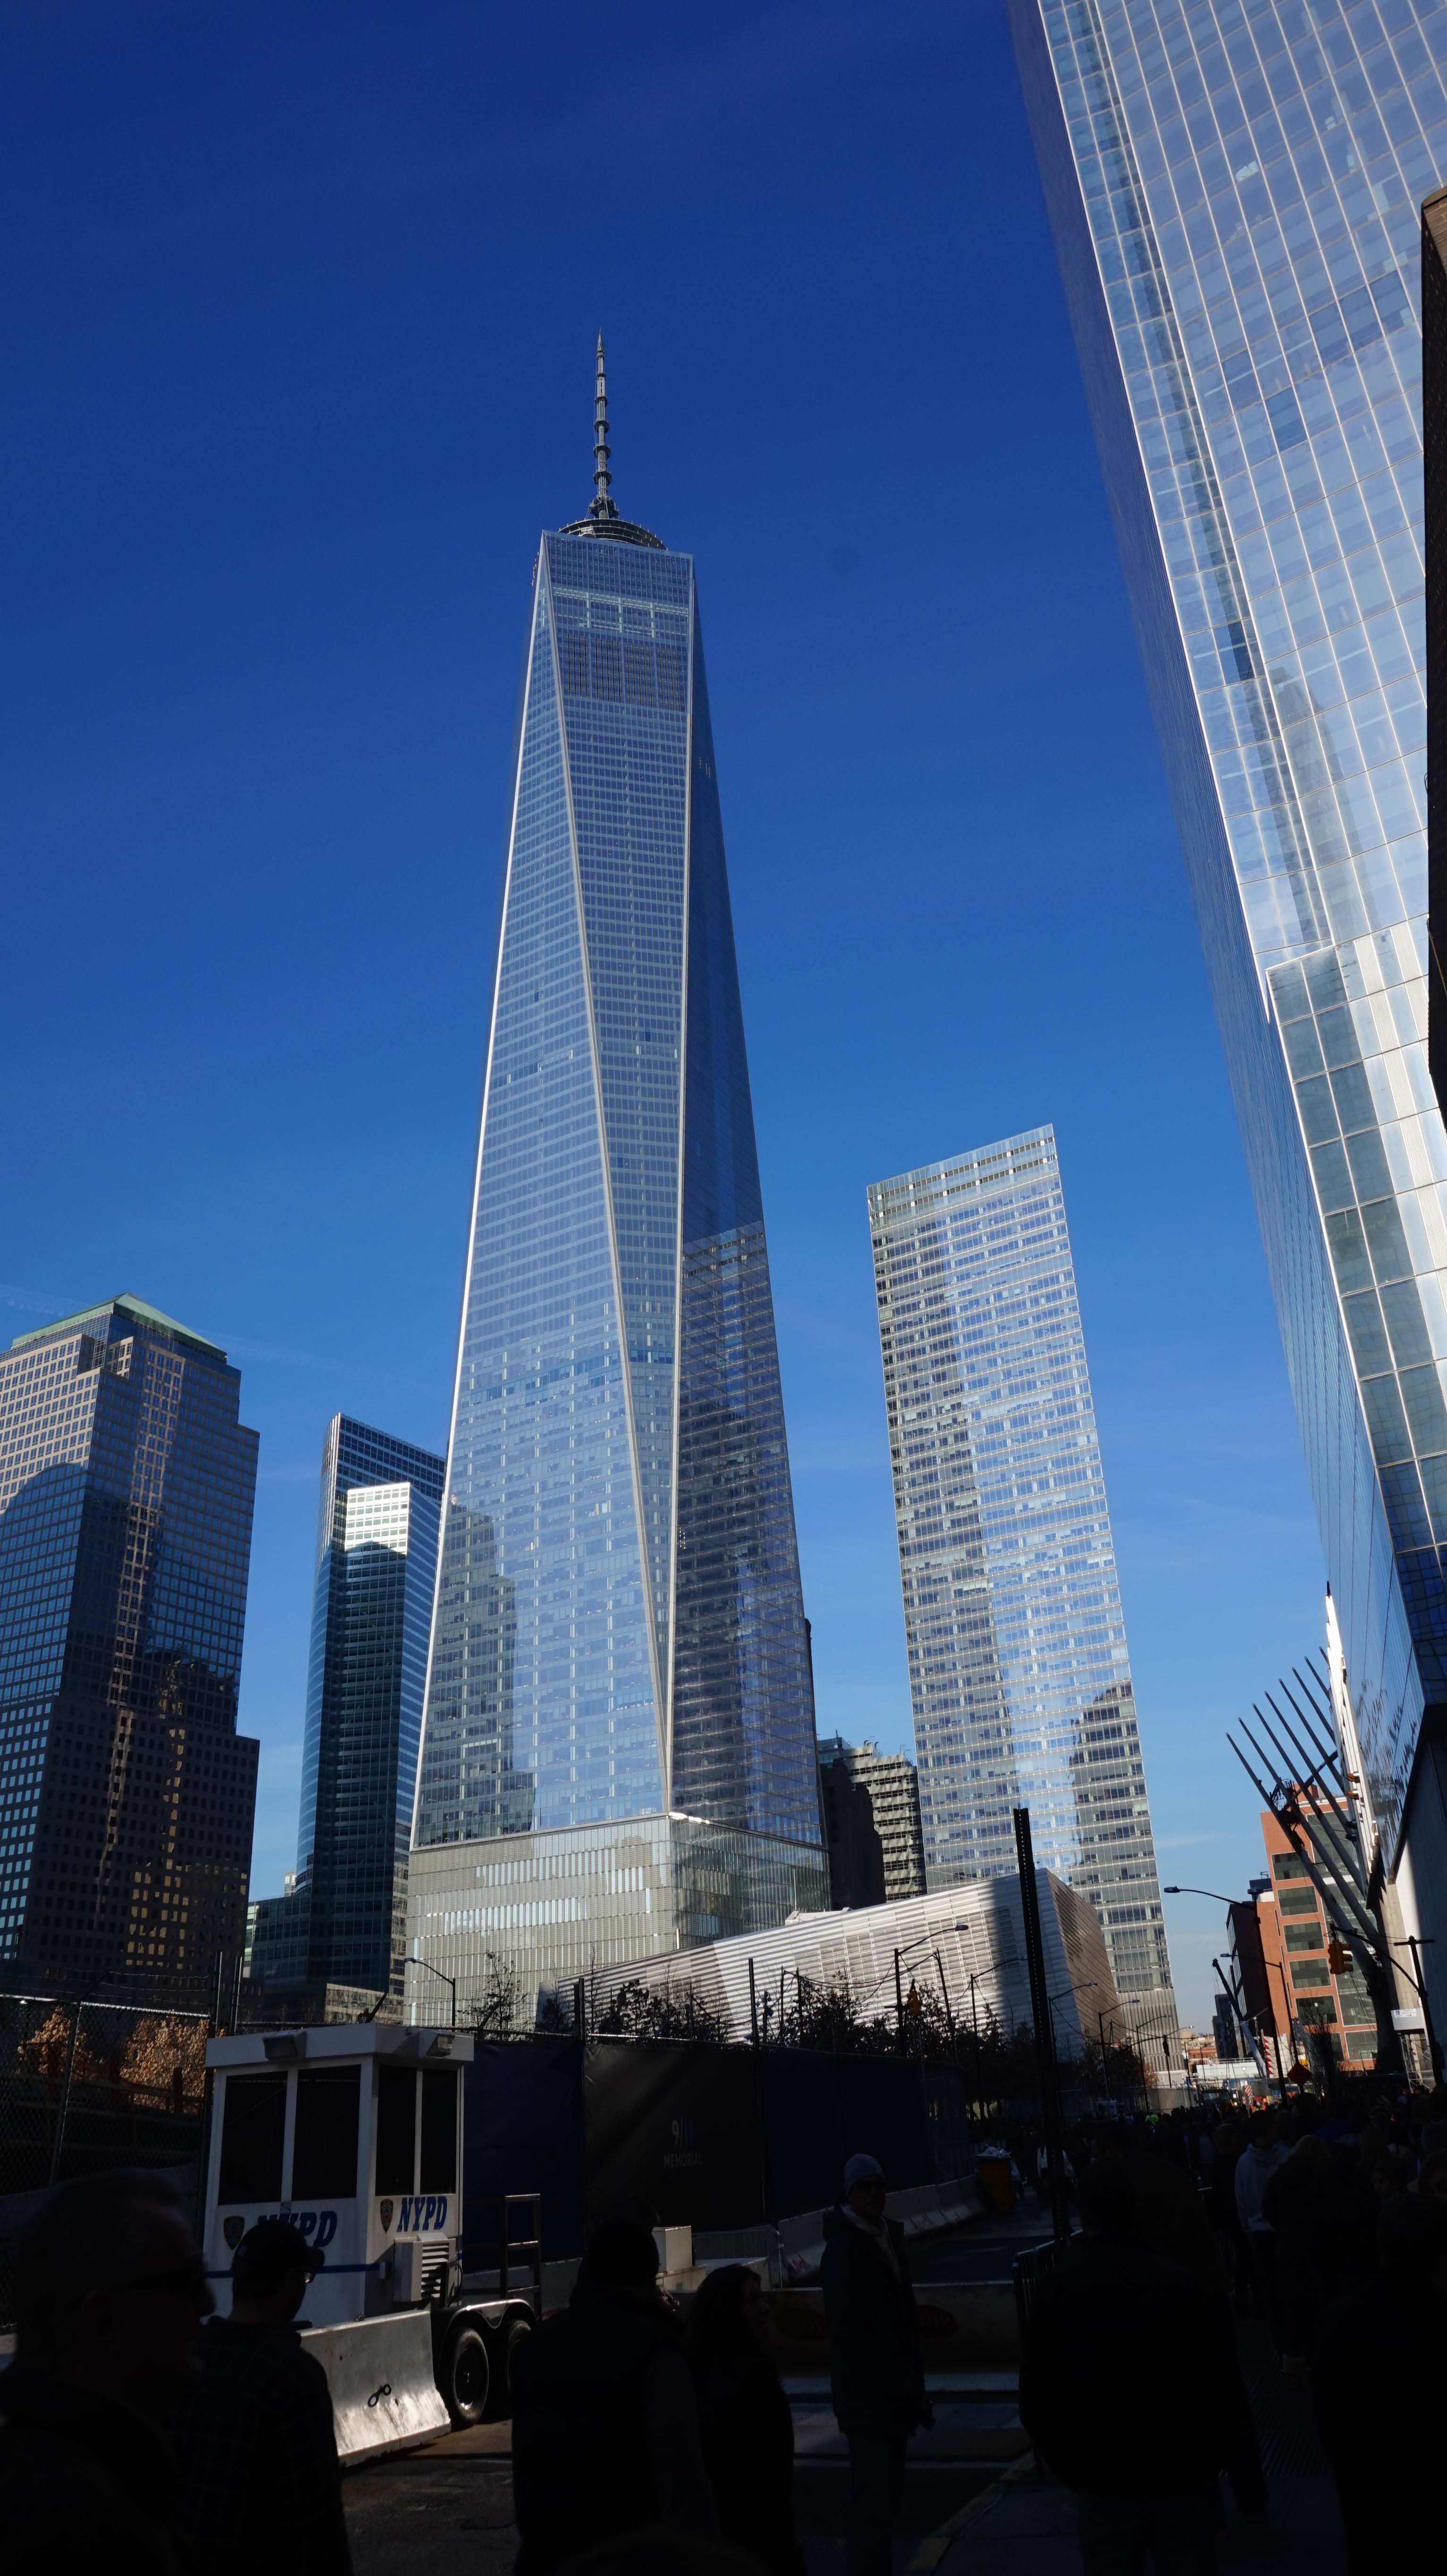 911 world trade center essay Attack the world trade center: 9-11 topics: september 11 attacks, al-qaeda, osama bin laden pages: 2 (557 words) published: june 5, 2002 the likely mastermind of the sept 11 attacks is a kuwaiti-born lieutenant of osama bin laden who had previously plotted to attack the world trade center and to bomb several airliners simultaneously.